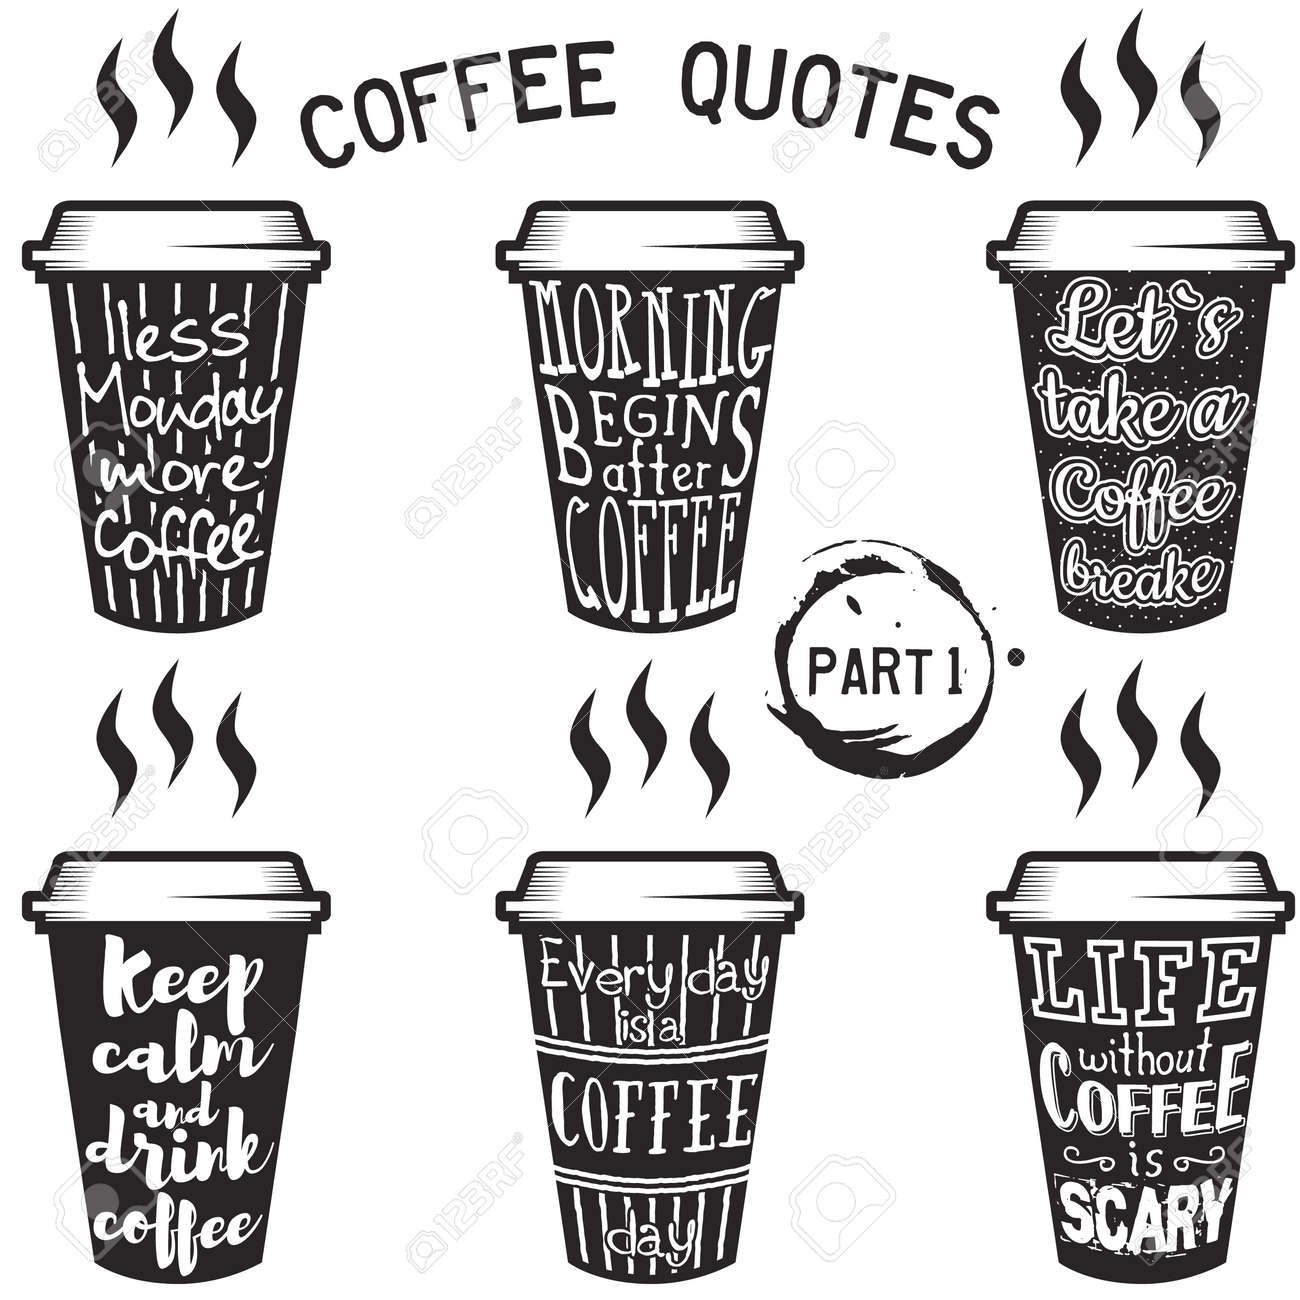 Vector Coffee Quotes And Sayings Typography Set Royalty Free Cliparts Vectors And Stock Illustration Image 78070064